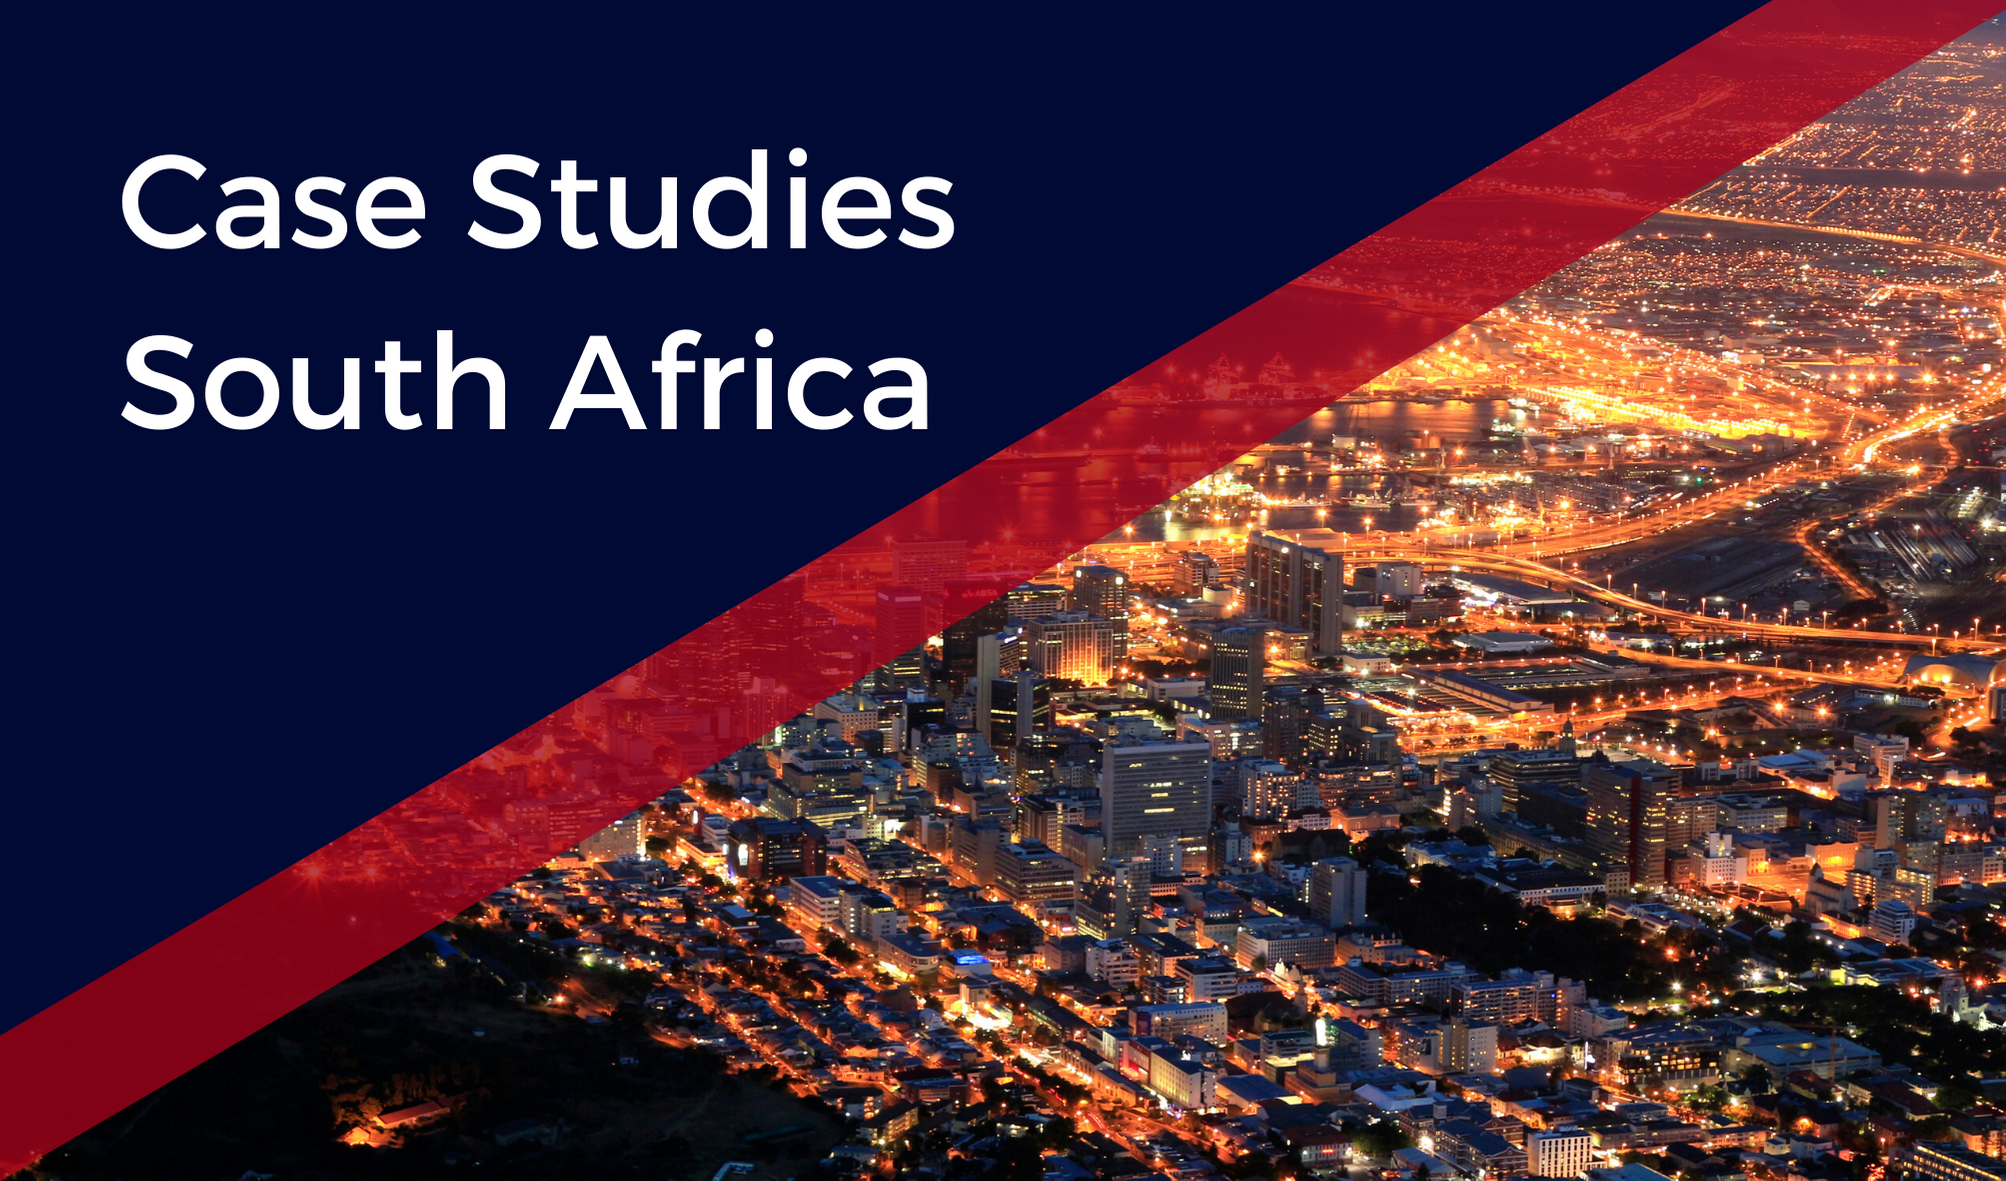 South African Case Studies